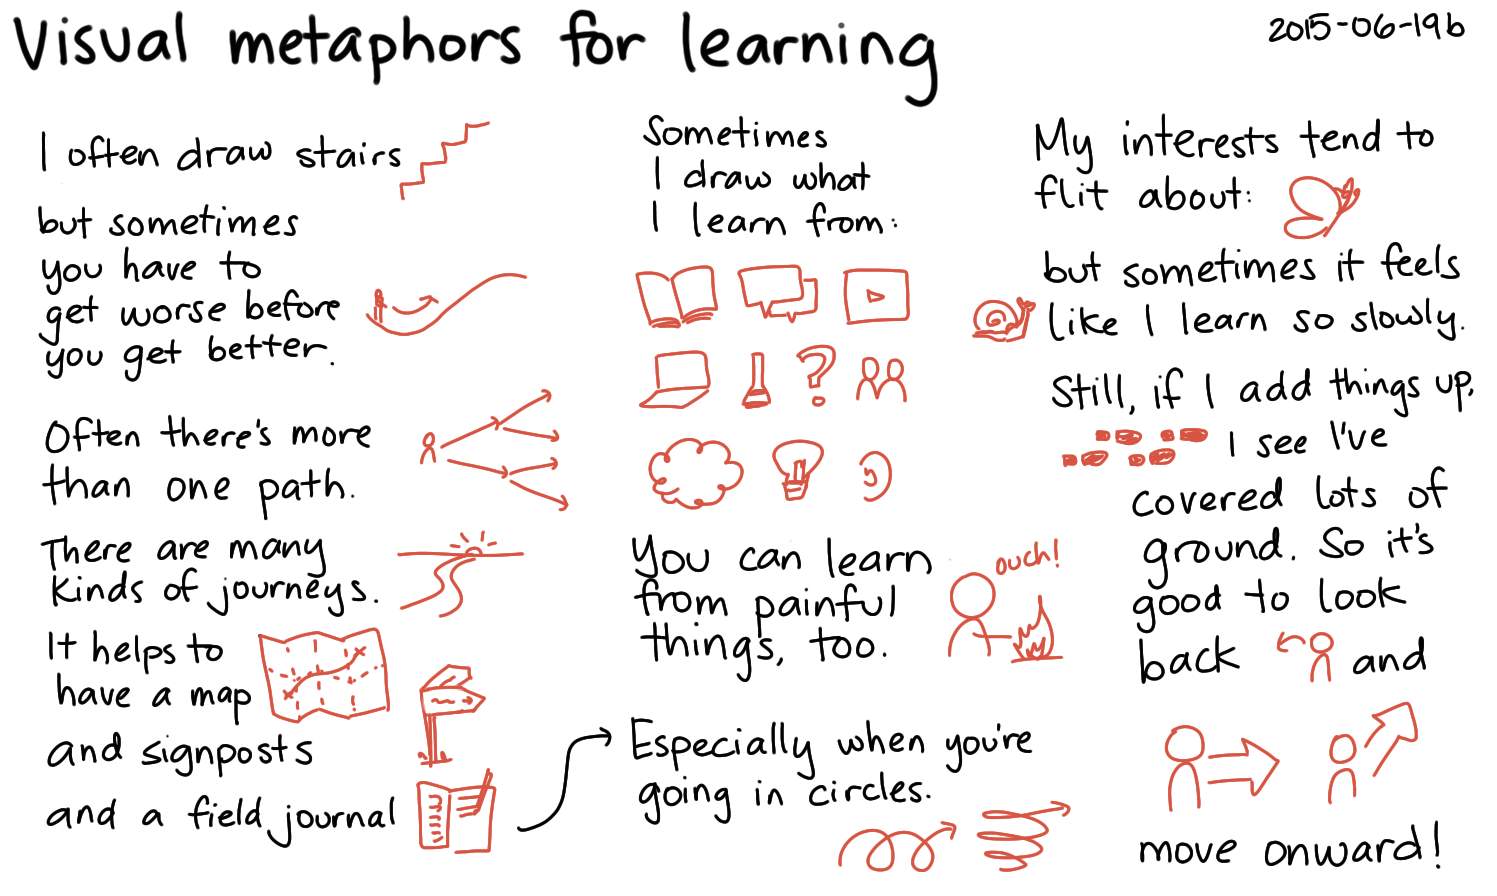 2015-06-19b Visual metaphors for learning -- index card #drawing #learning.png